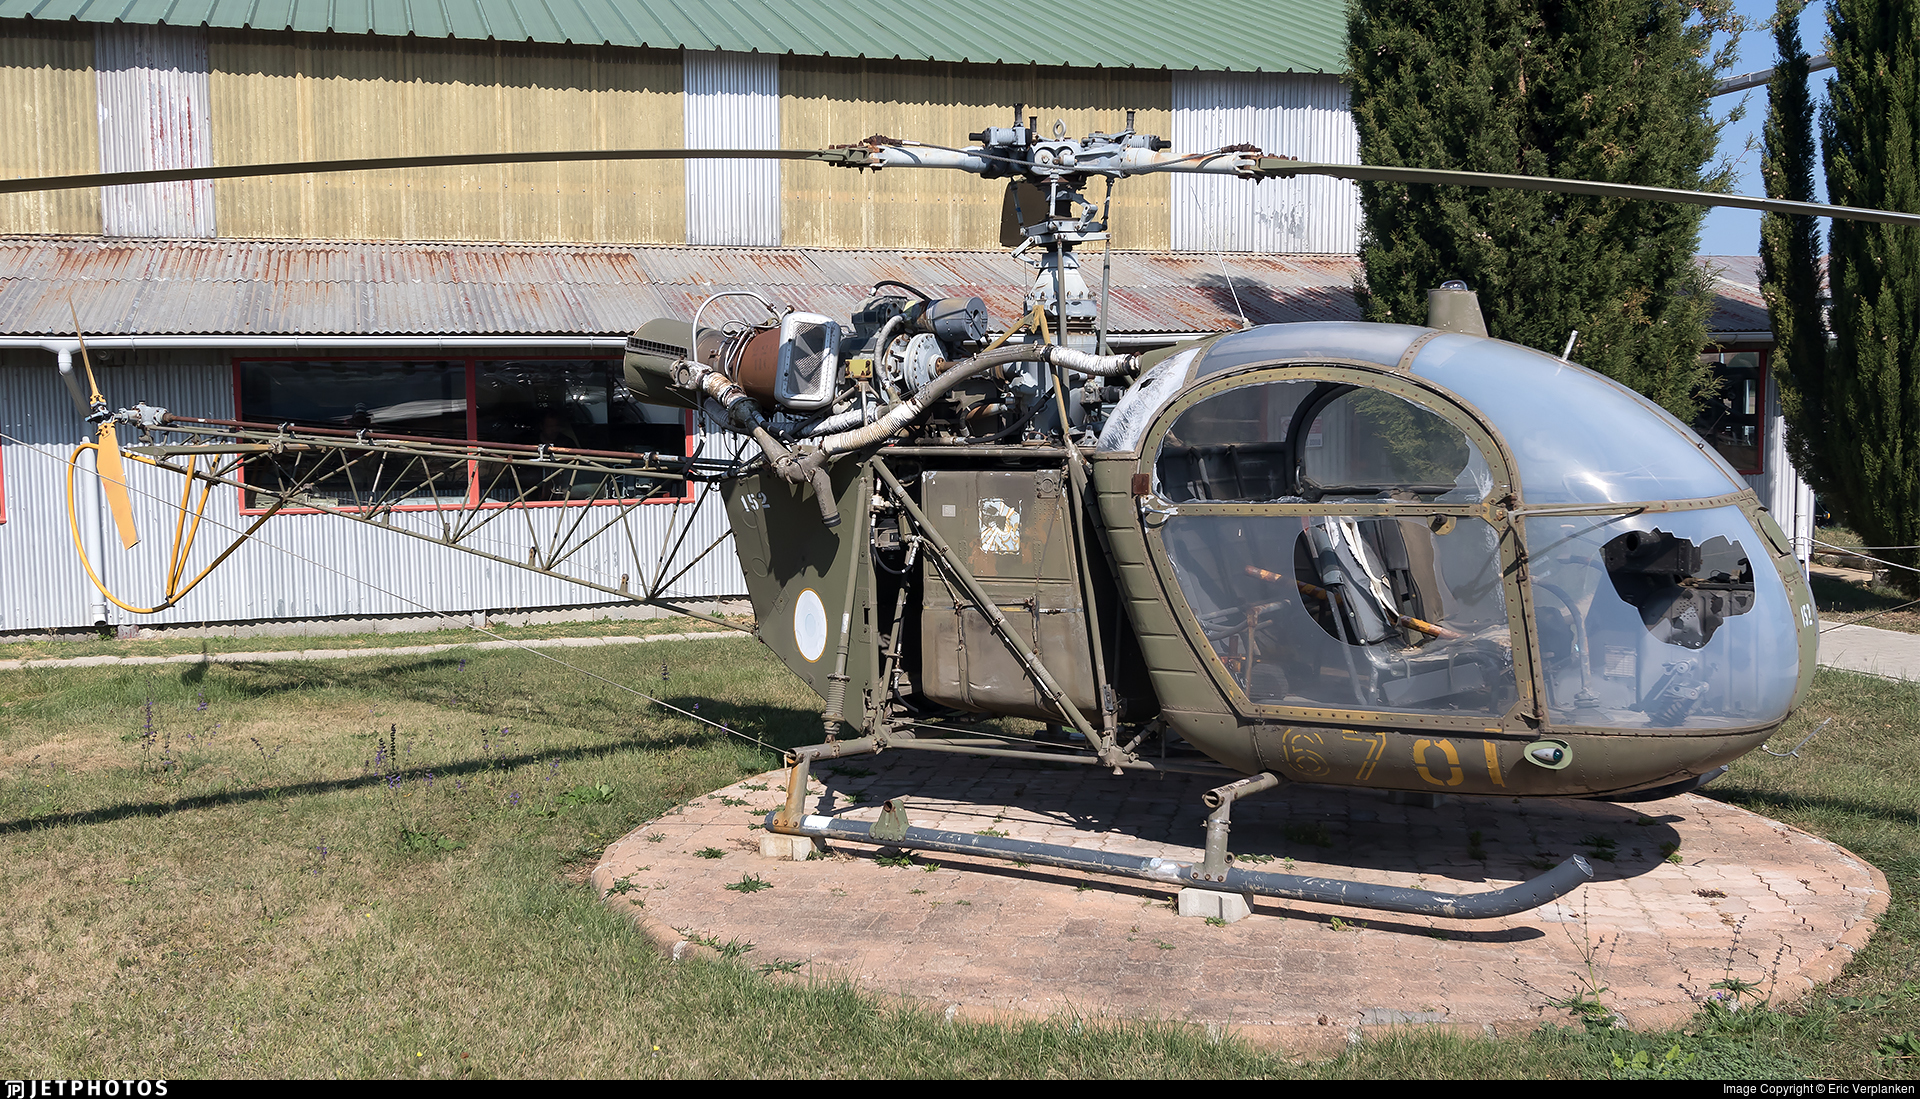 152 - Aérospatiale SA 318C Alouette II - France - Air Force